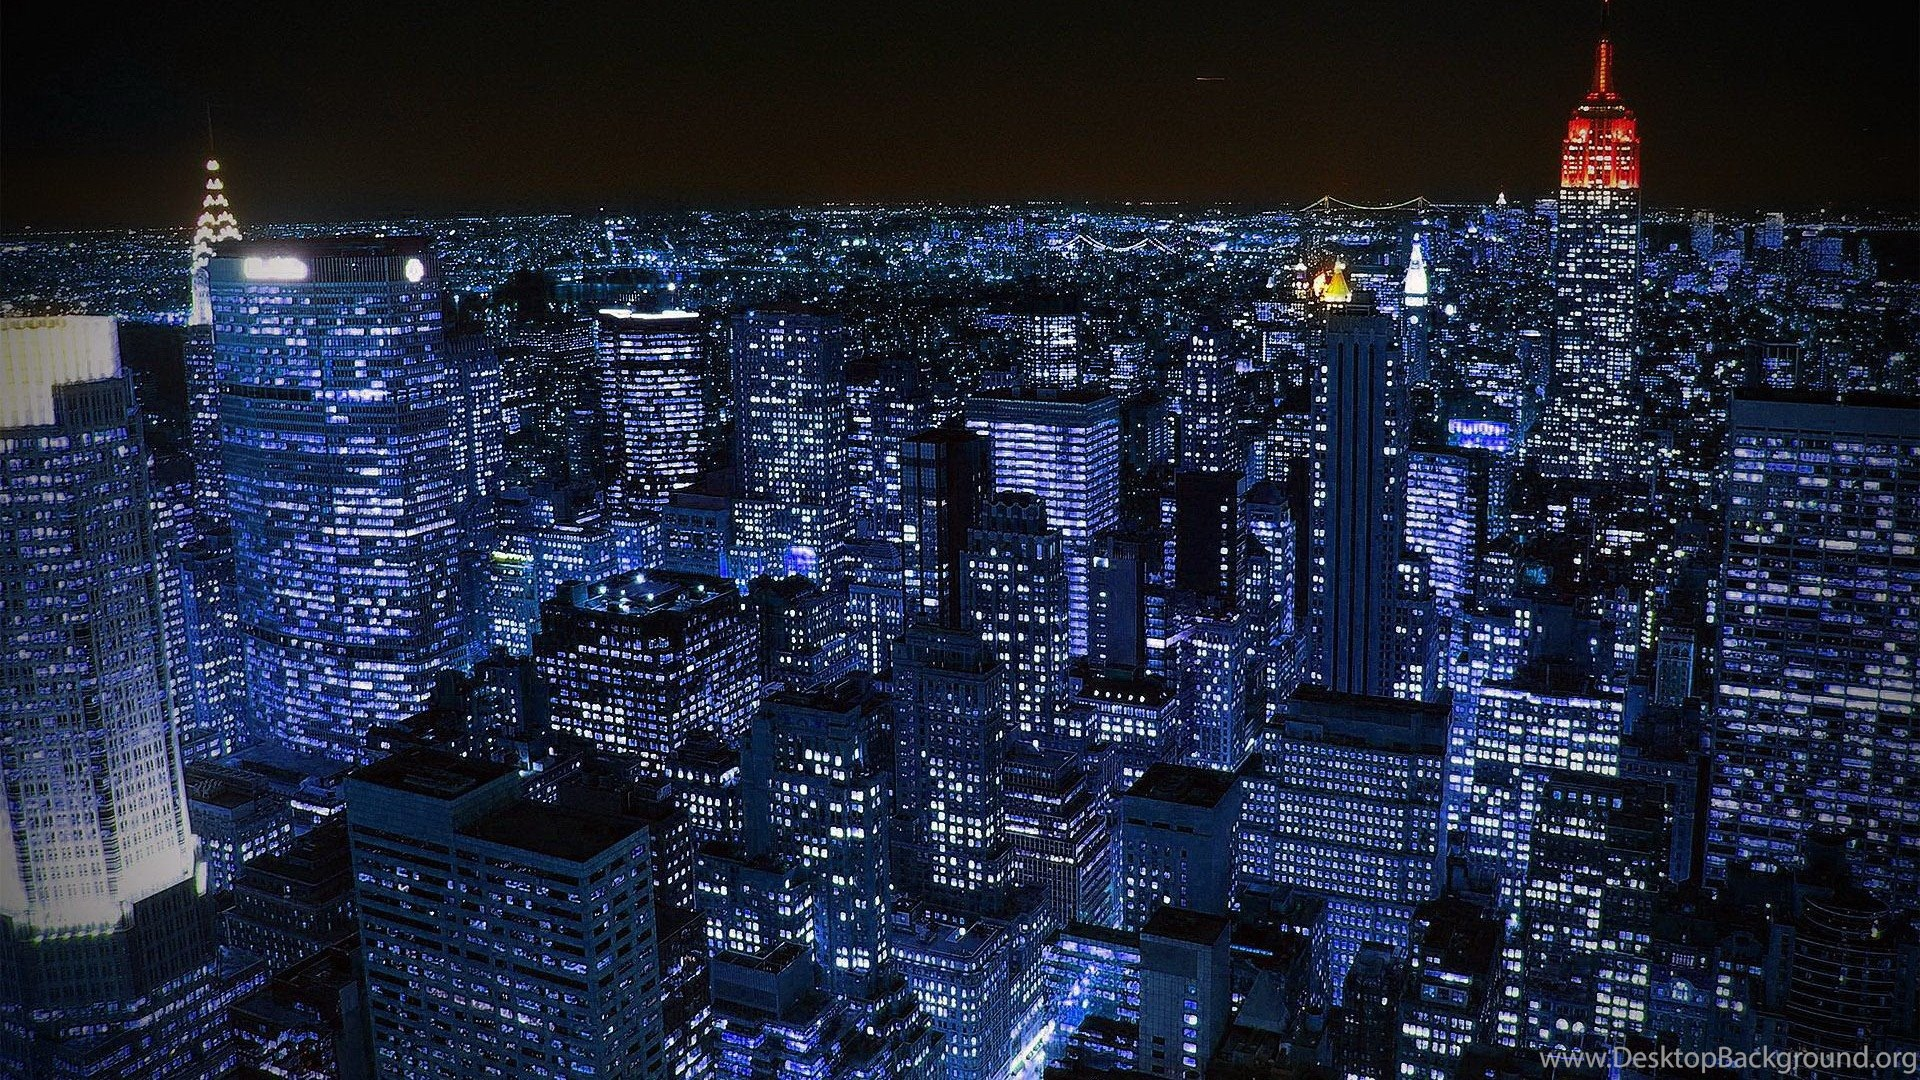 High Resolution New York Skyline At Night Wallpapers Hd 6 City